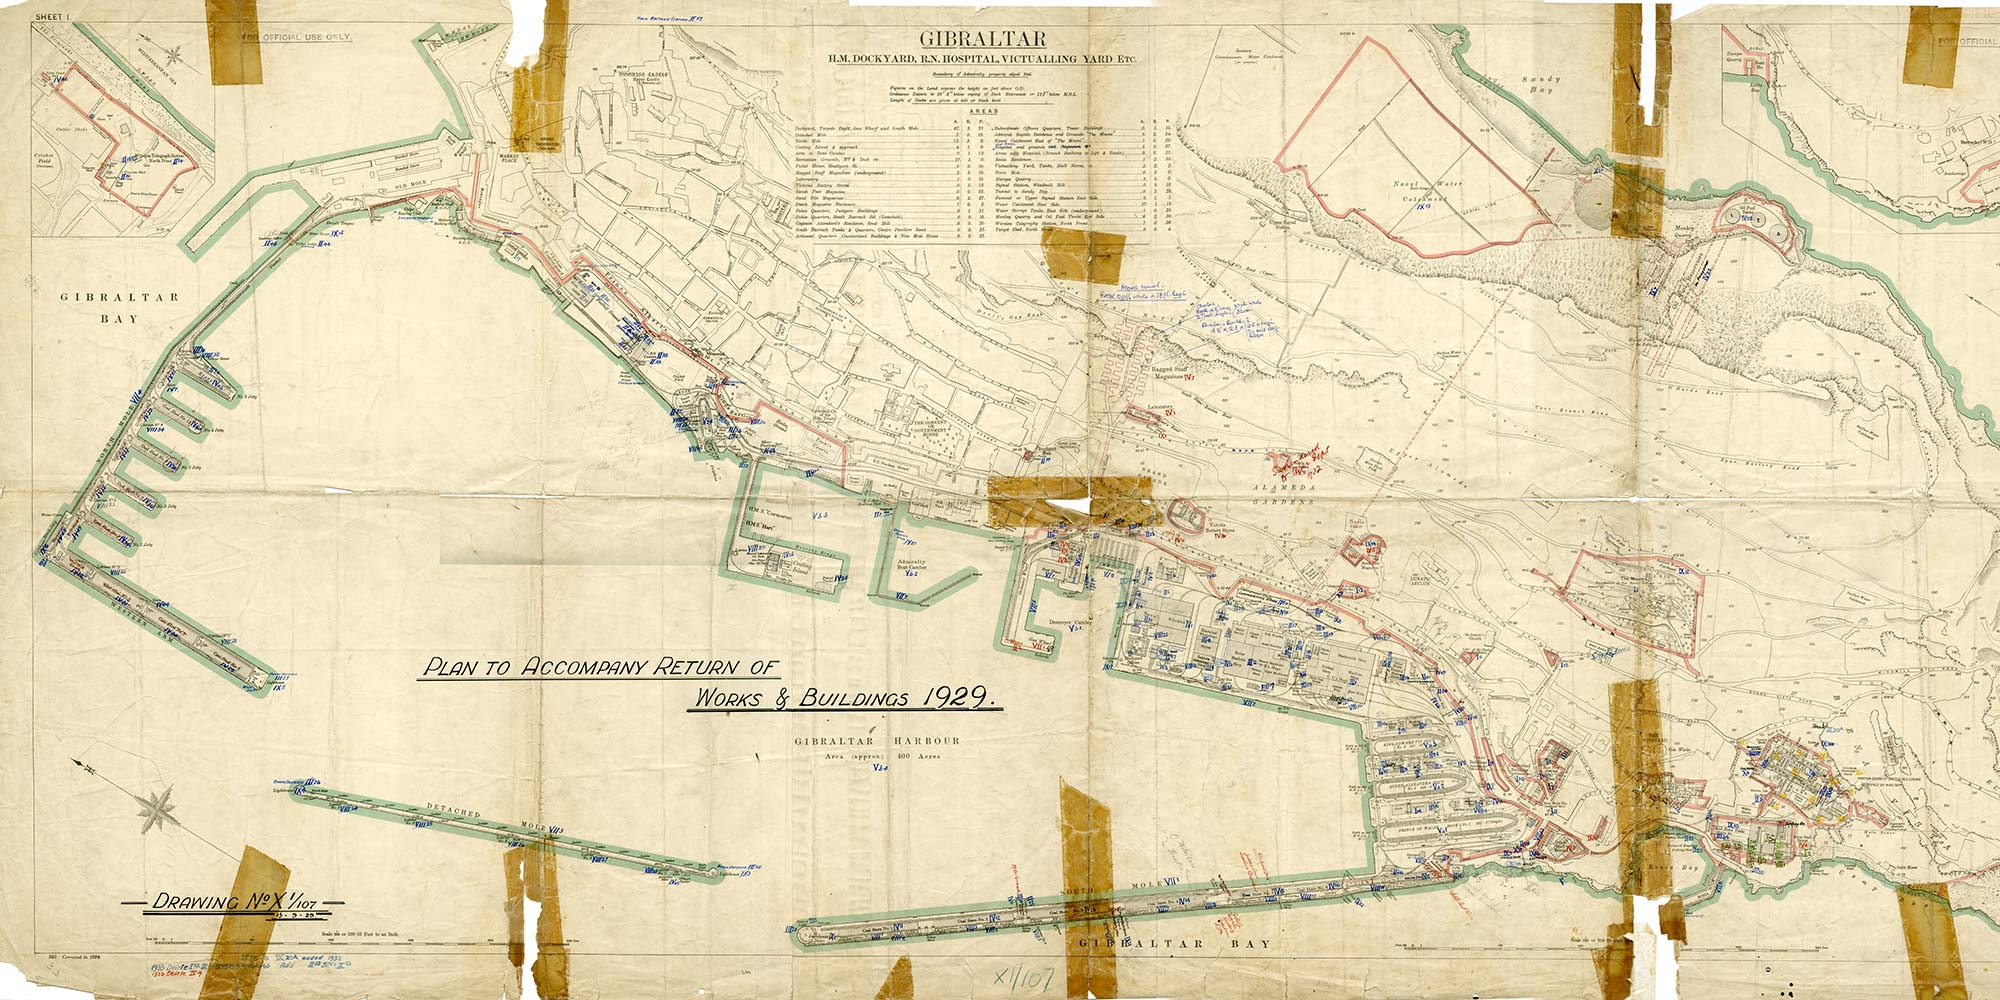 Map-8-Bay-of-Gibraltar-and-HMNB-1929